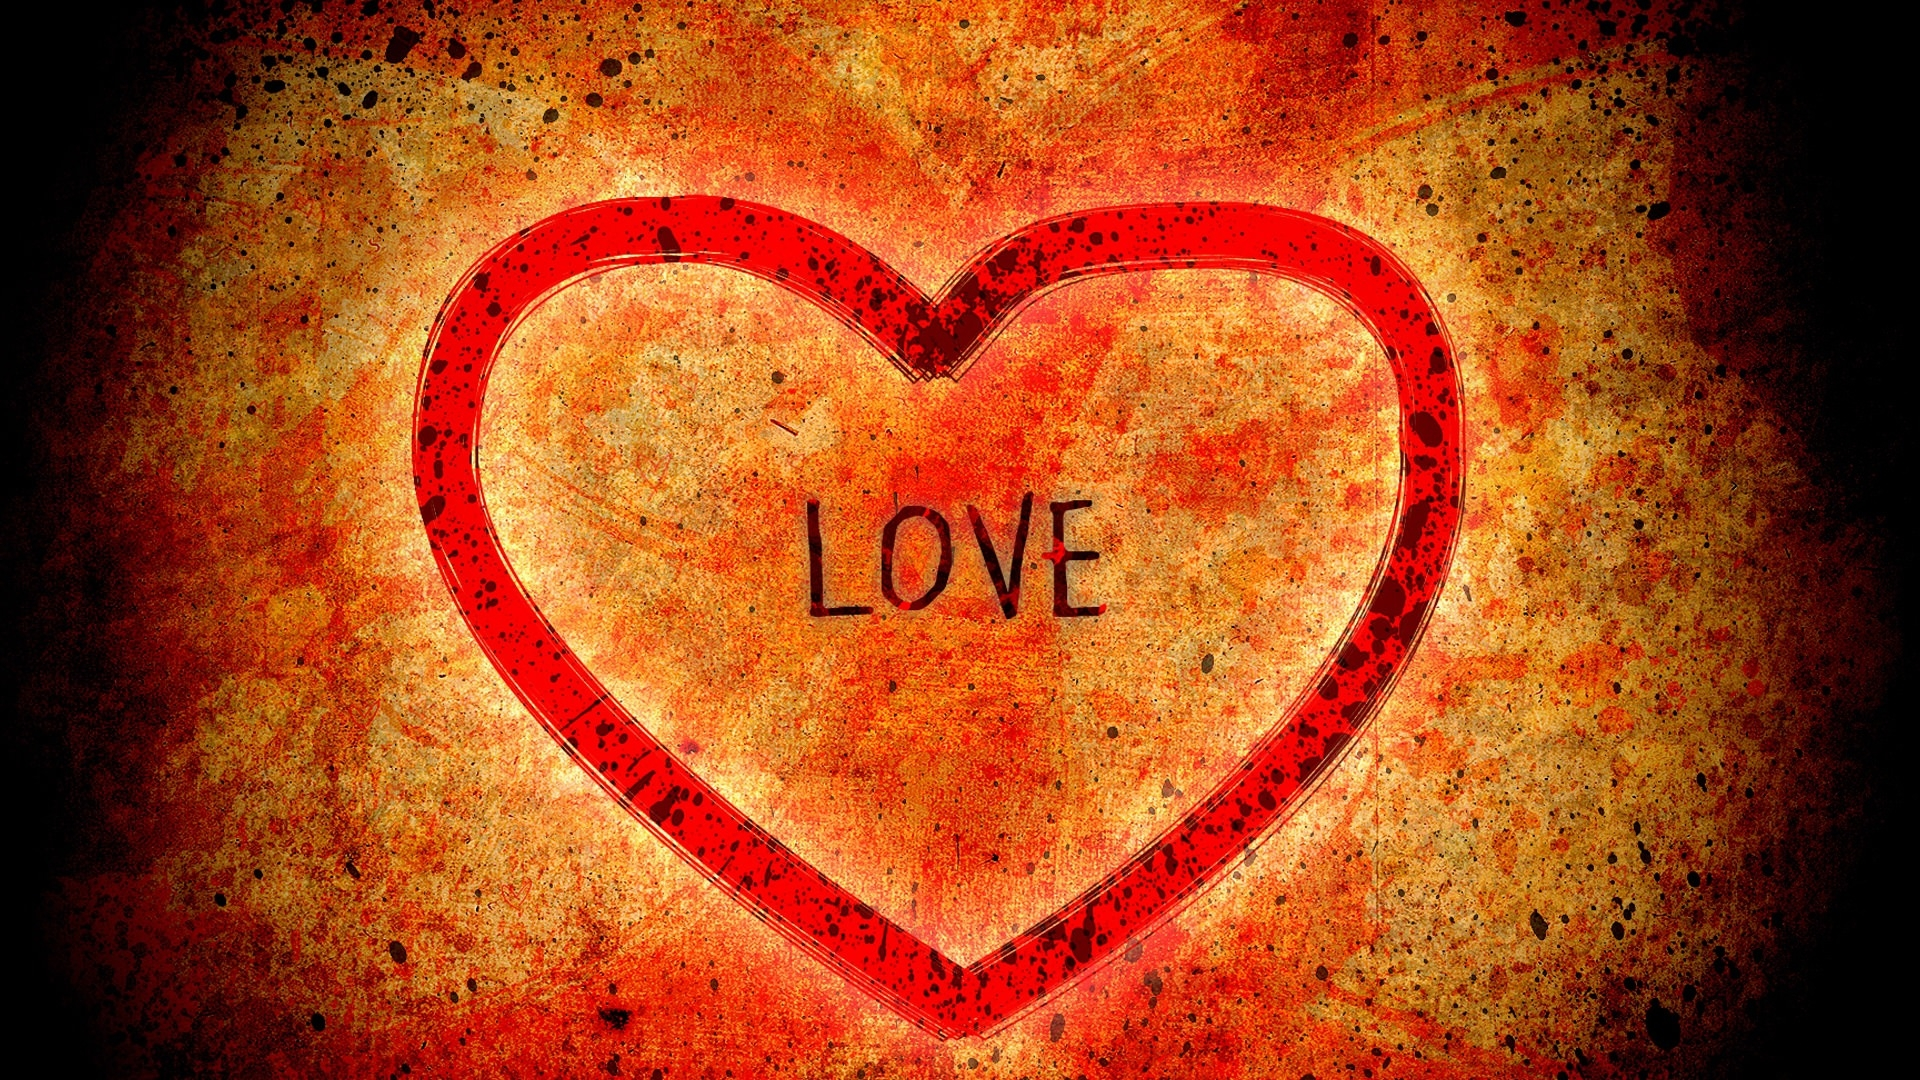 Love Wallpapers Awesome : 21+ Love Wallpapers, Backgrounds, Images, Freecreatives